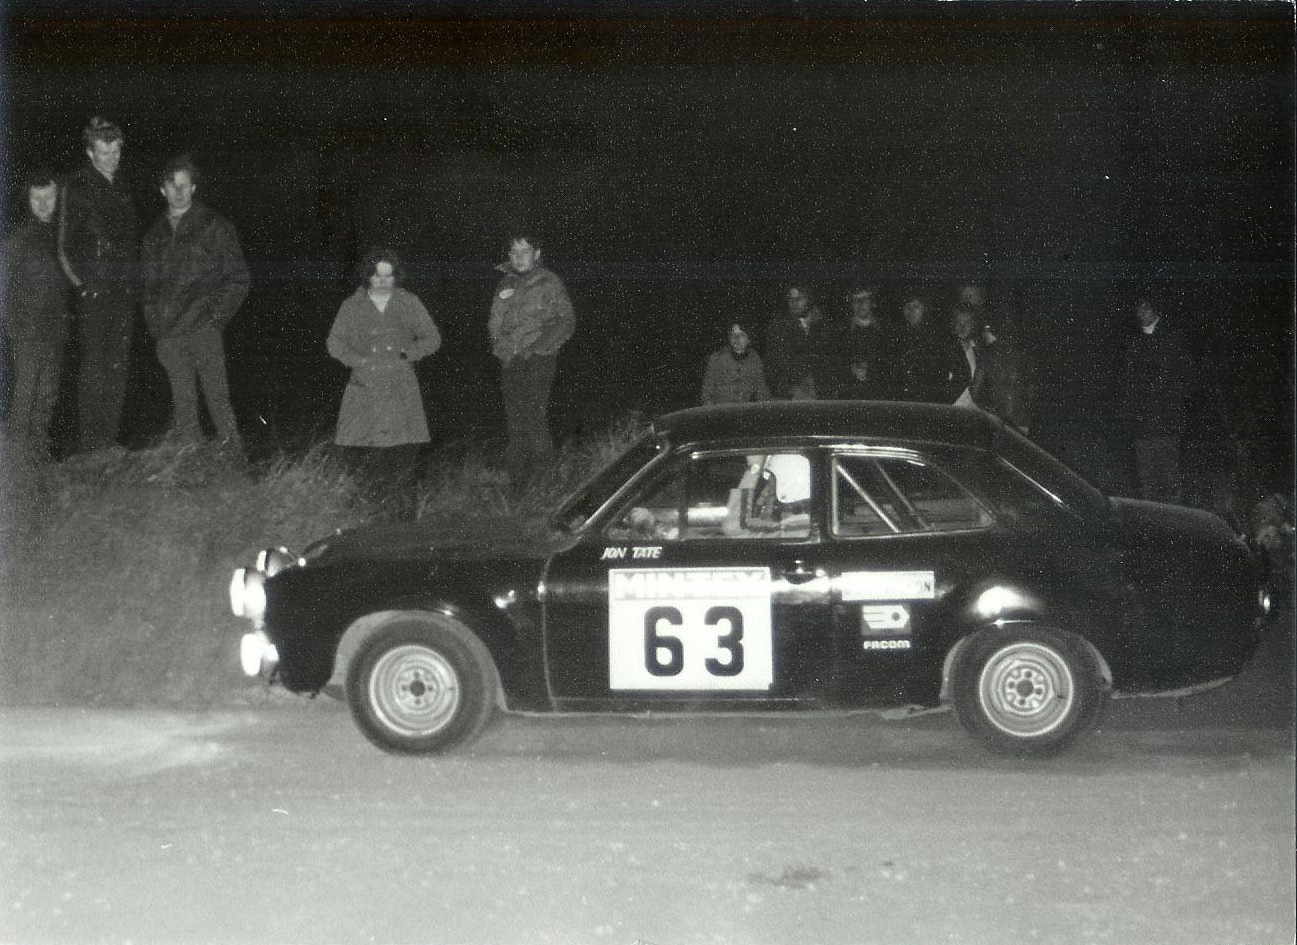 1974-Mintex-Rally-Car-63-Jon-Tate